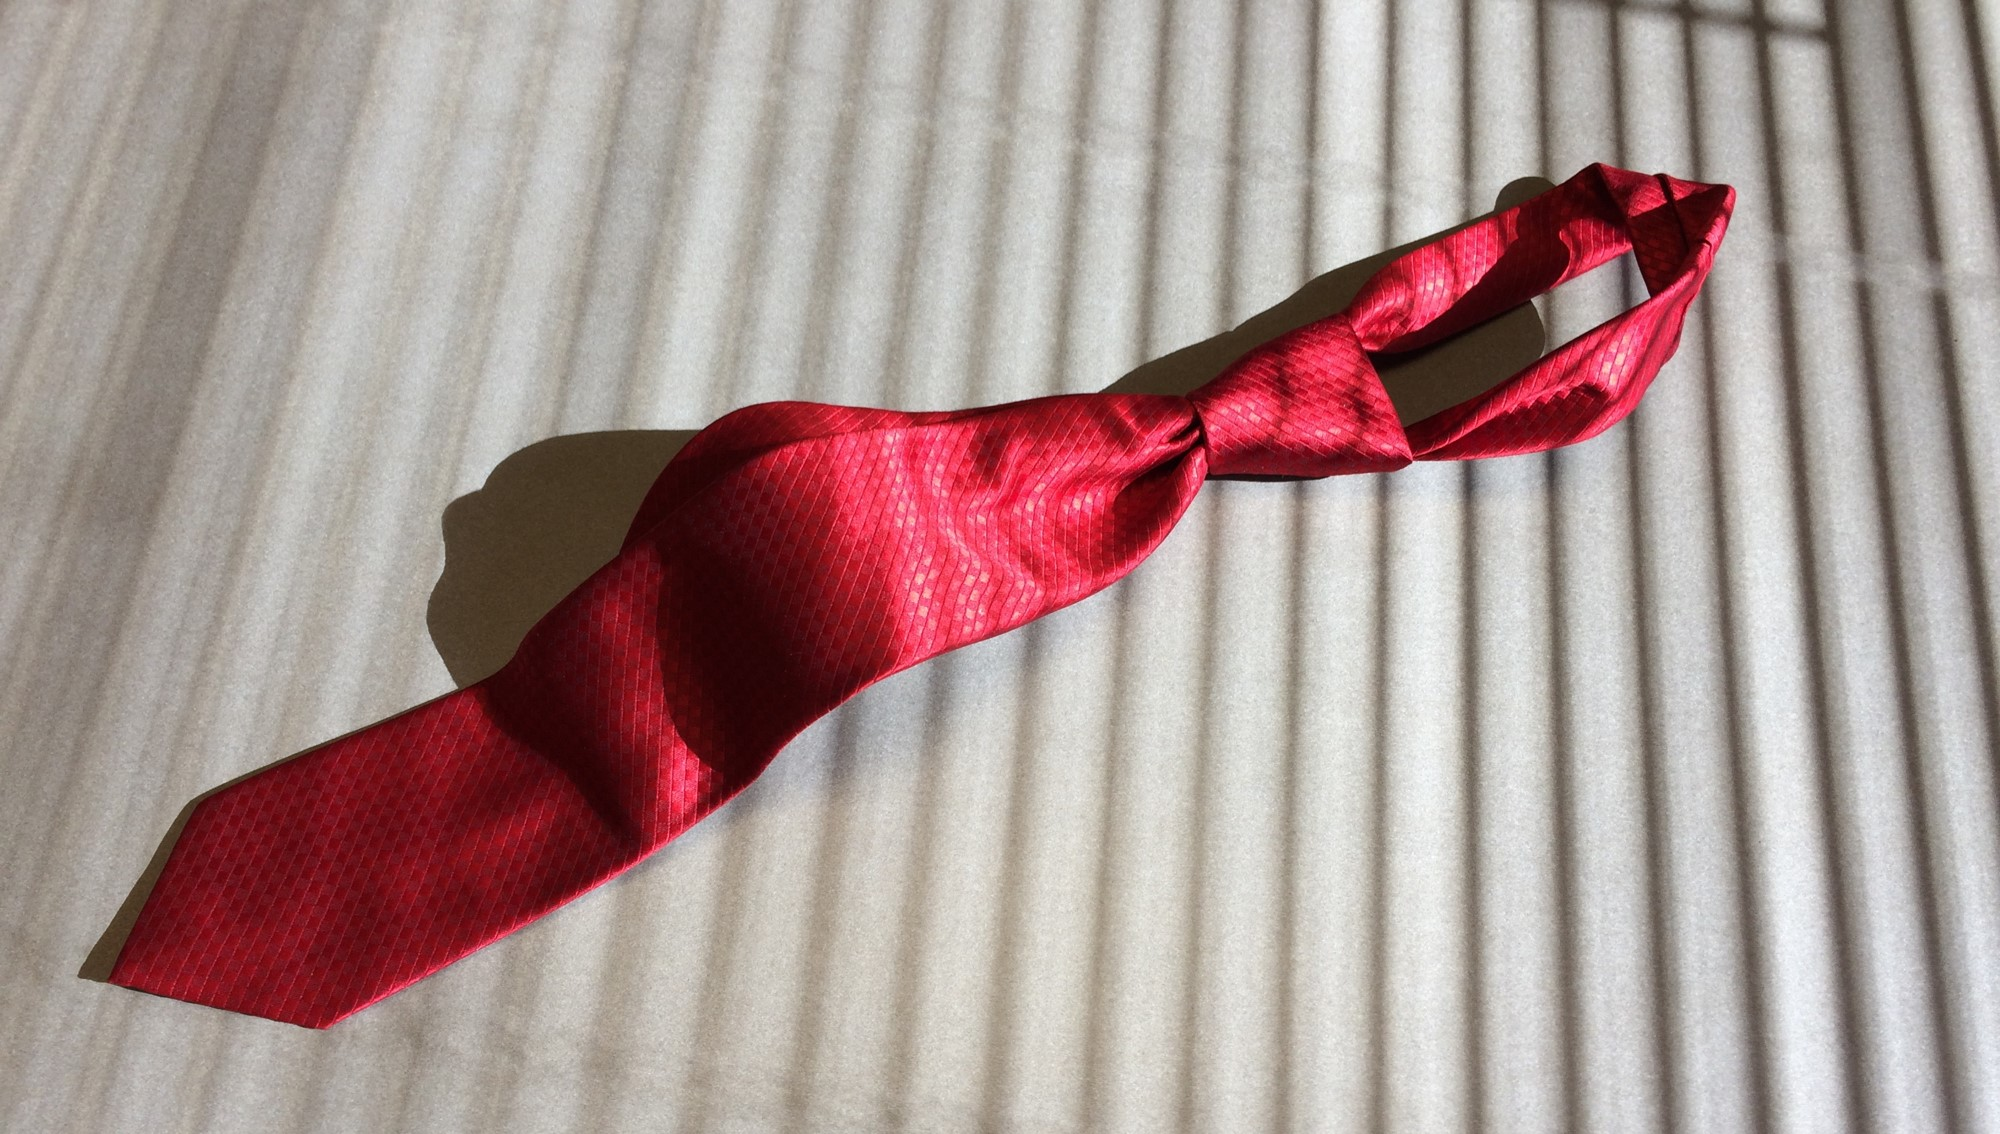 HoG Takes the National Hemophilia Foundation Red Tie Challenge